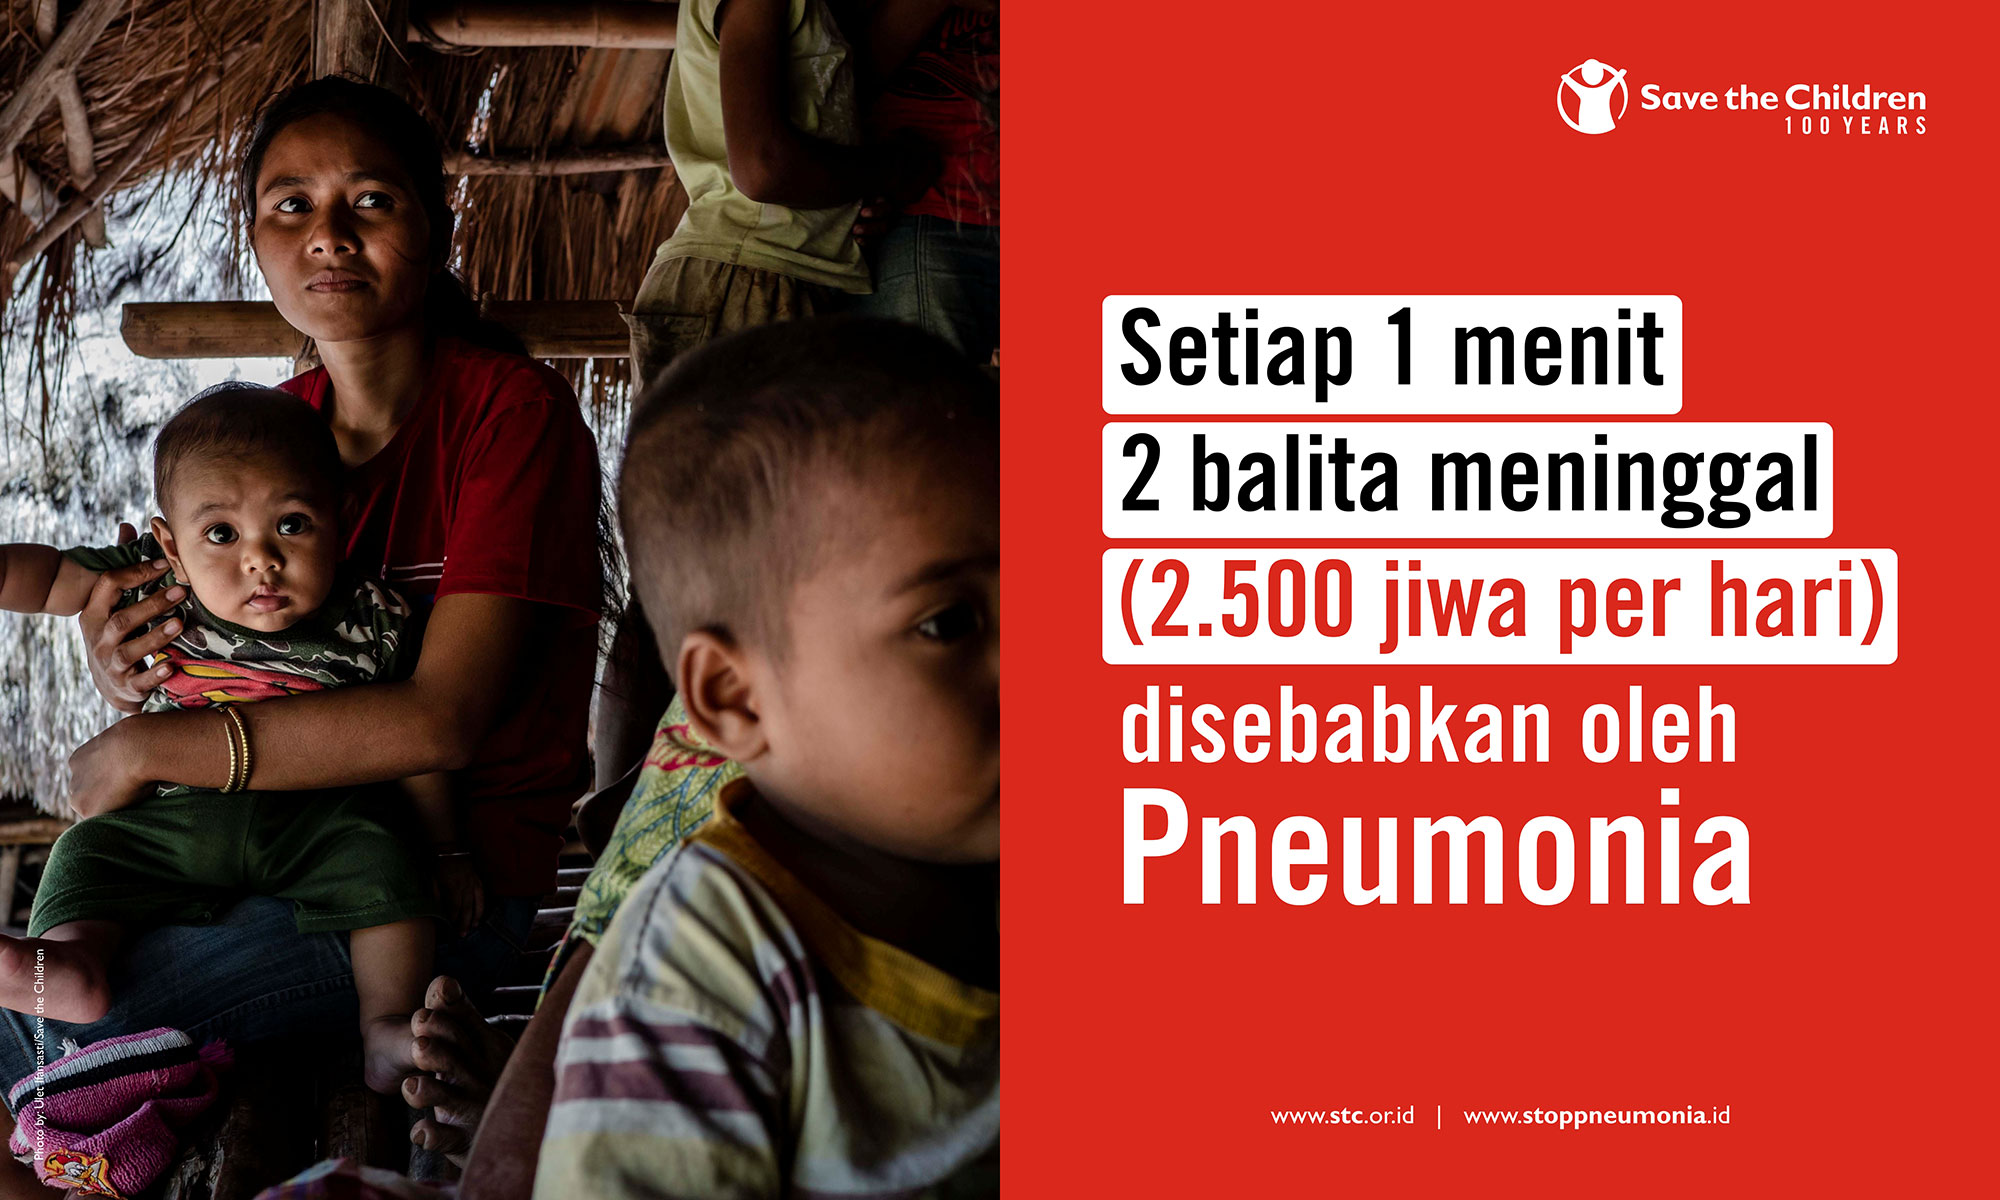 data pneumonia di indonesia, stop pneumonia indonesia, pneumonia id